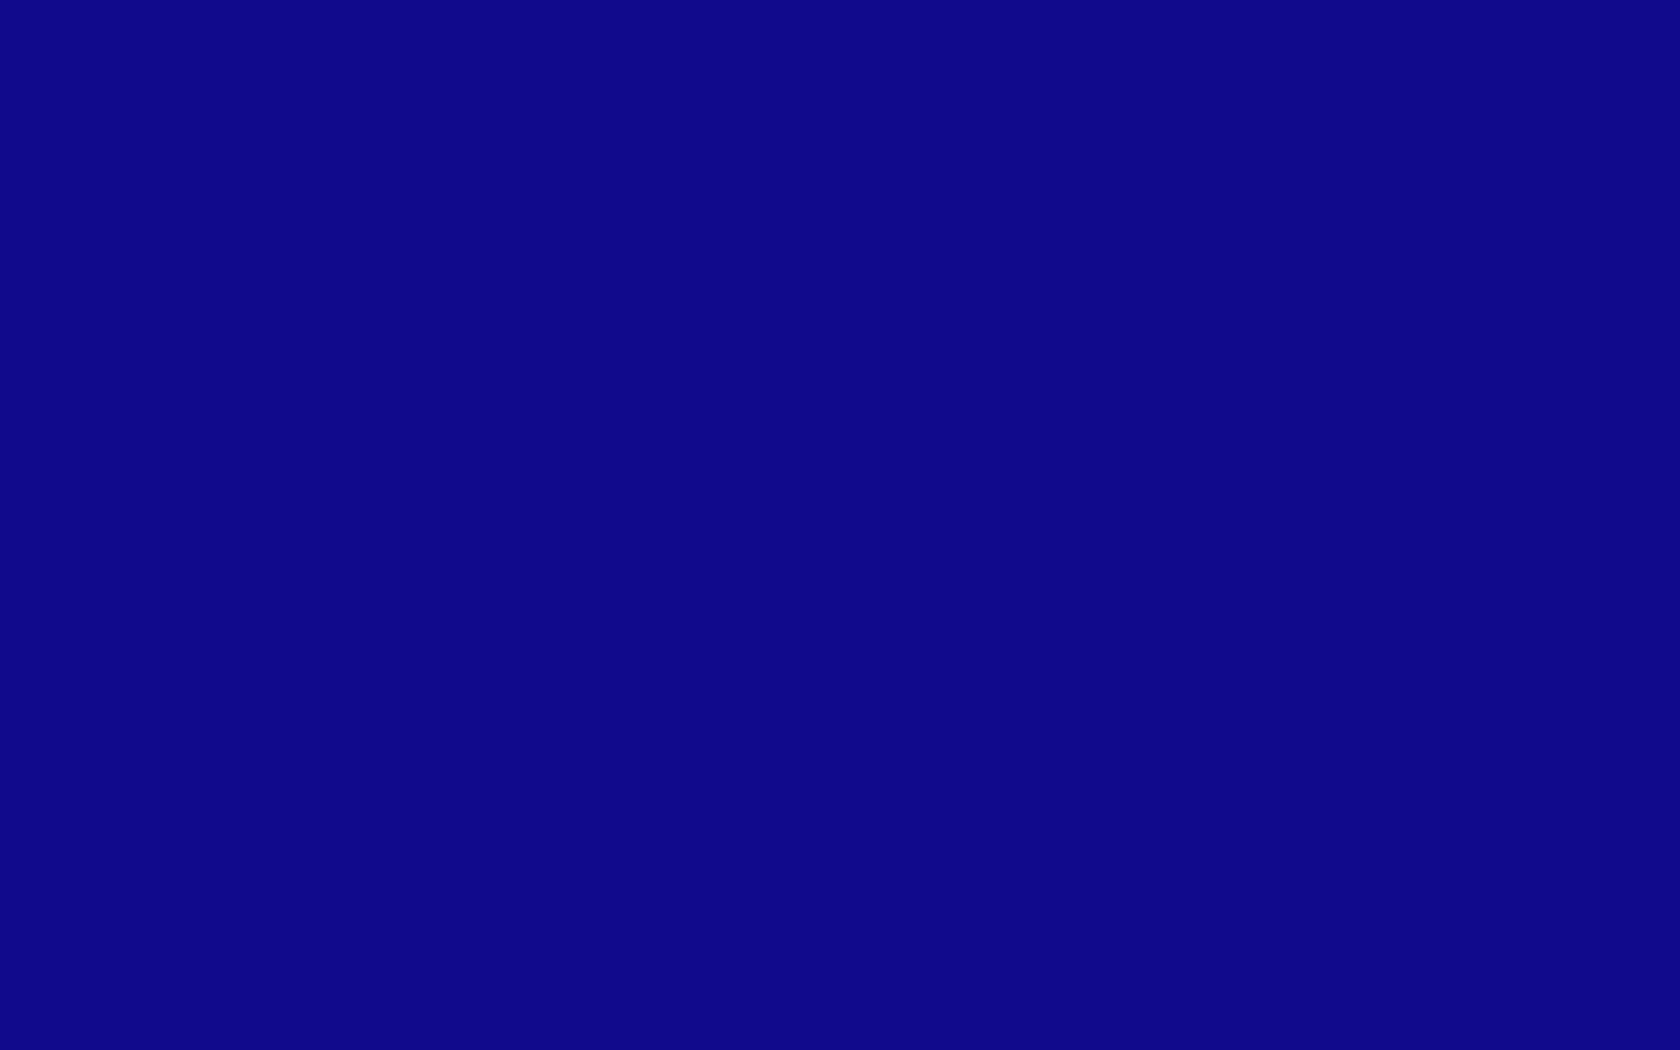 1680x1050 Ultramarine Solid Color Background